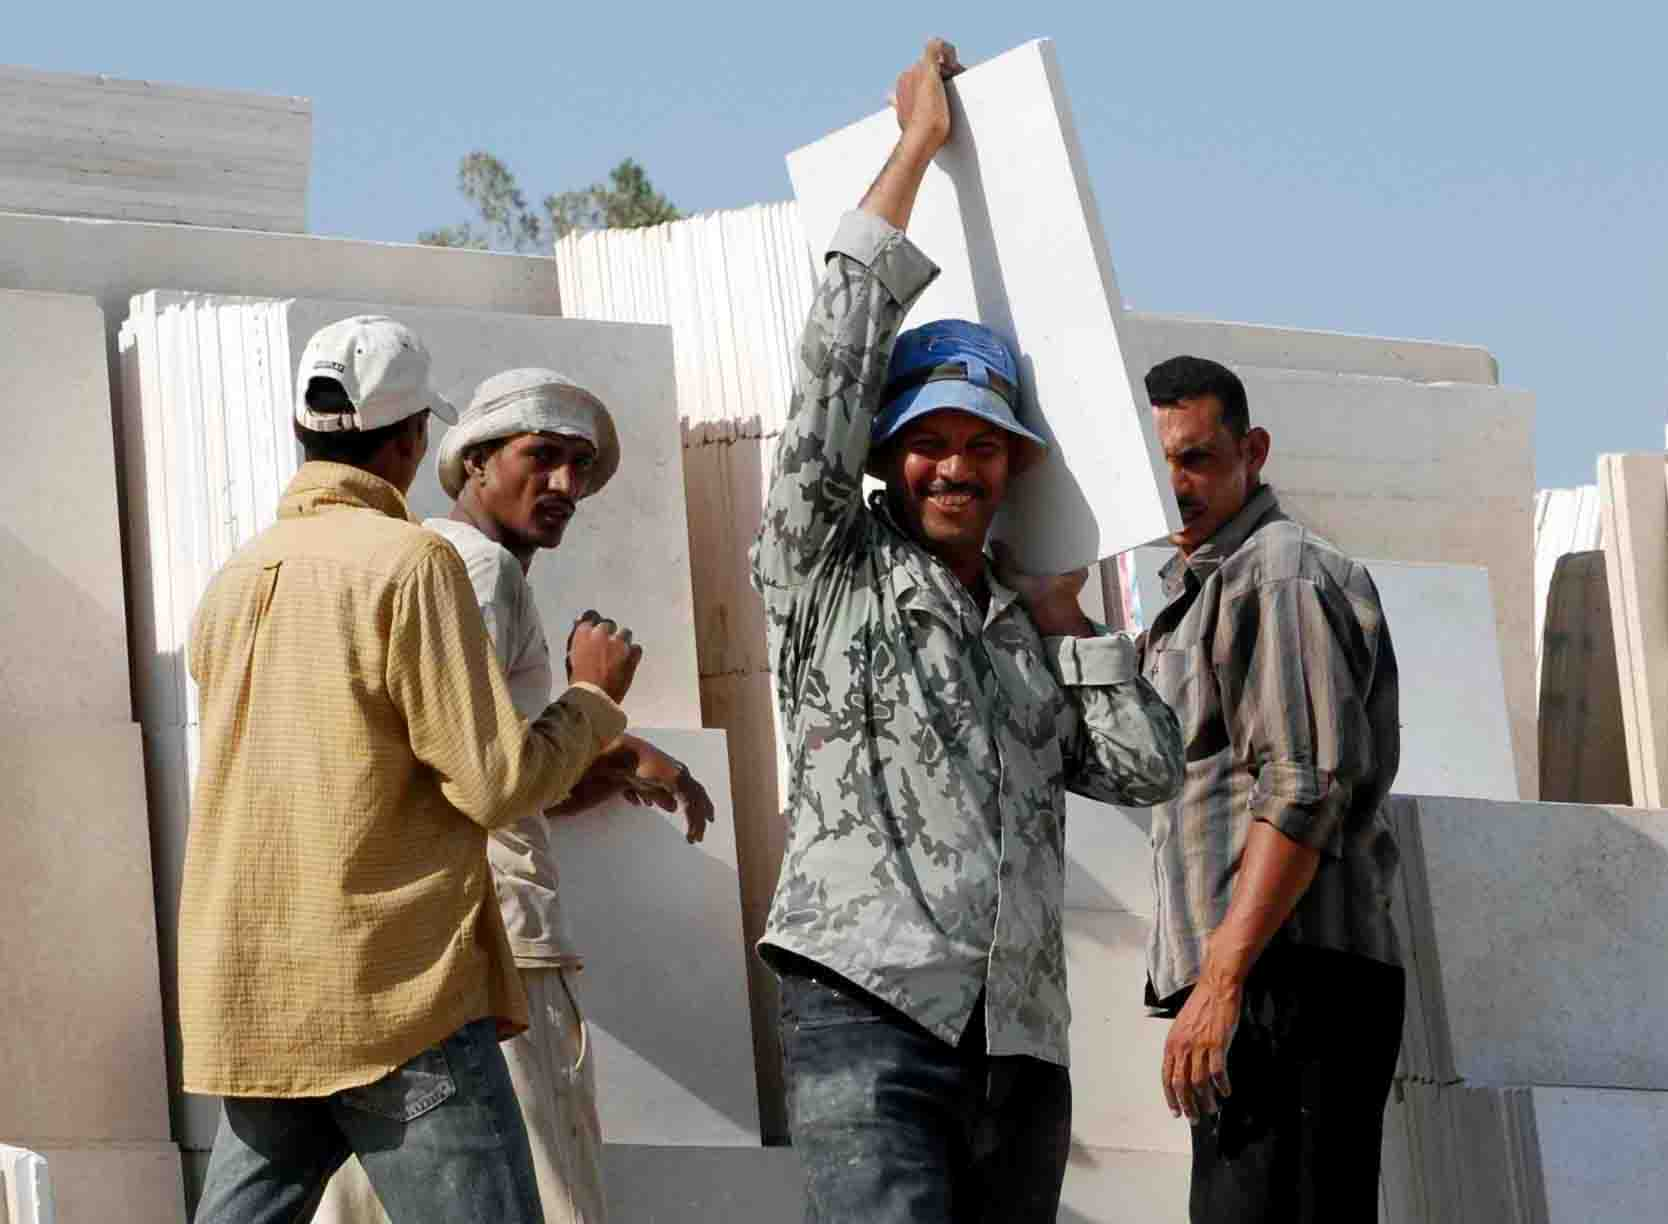 Construction workers in Egypt. Those returning from Libya are finding it difficult to get employed